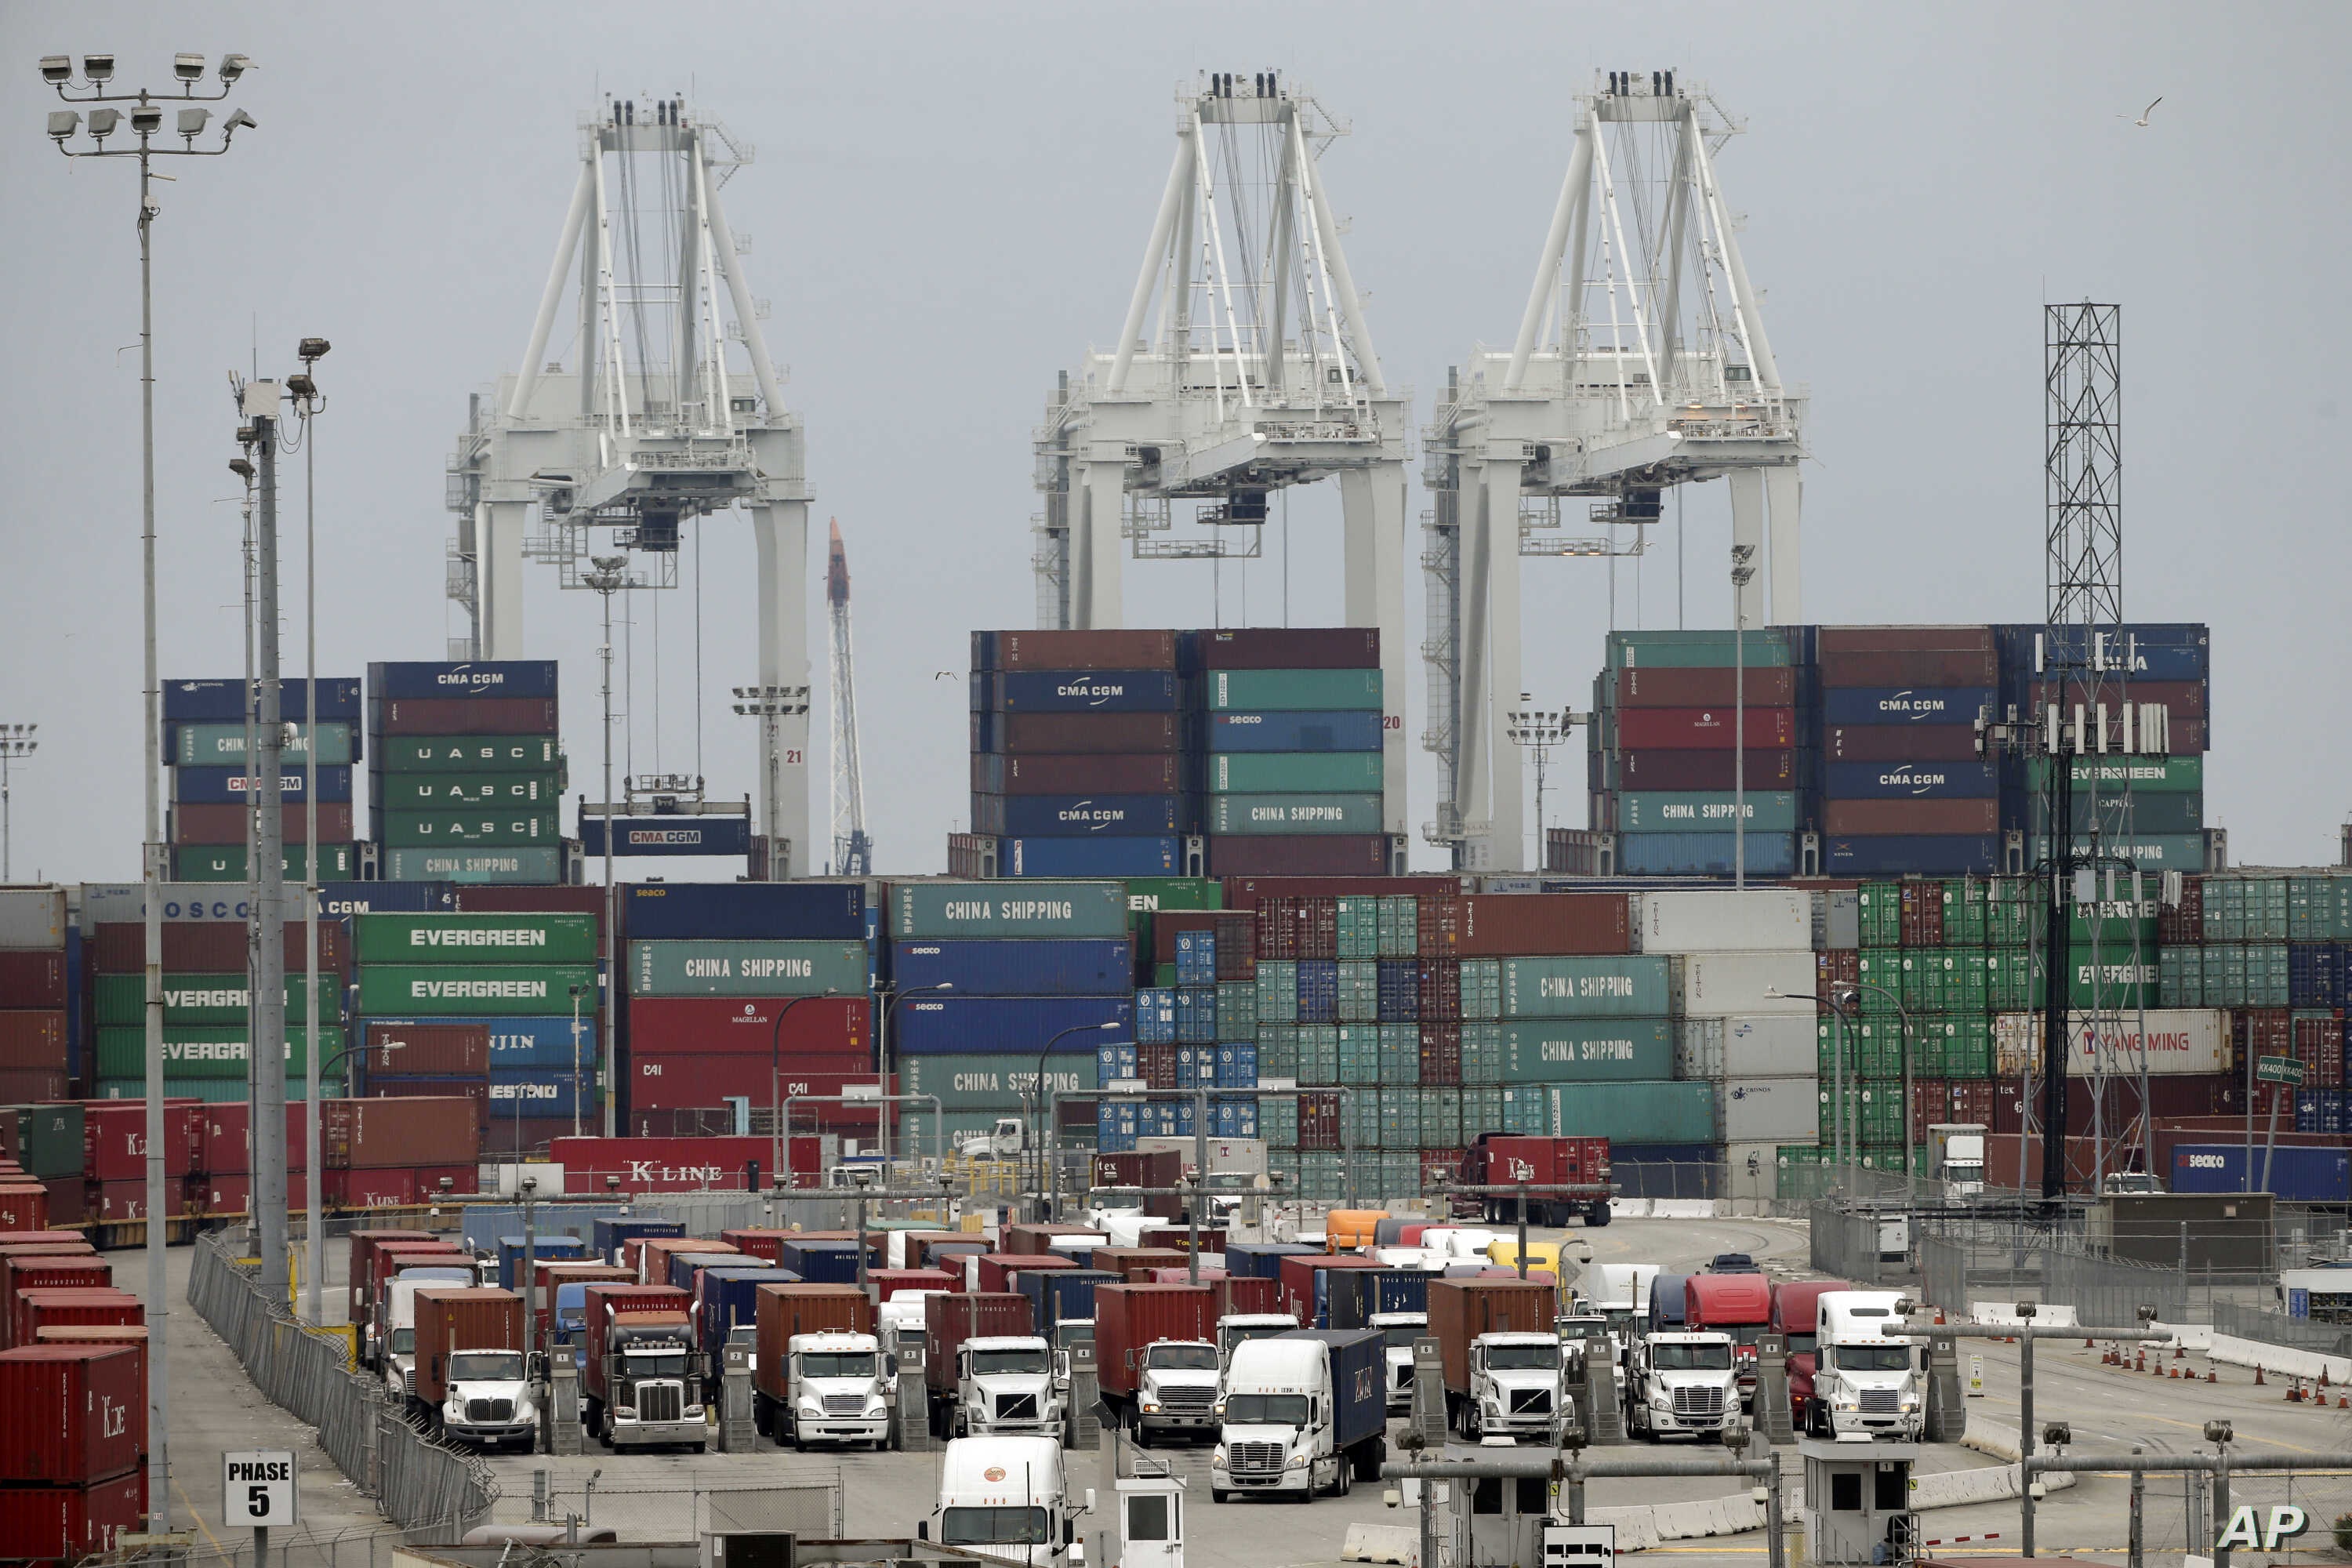 Cargo trucks wait in line at the Port of Long Beach, in Long Beach, Calif., Feb. 17, 2015.